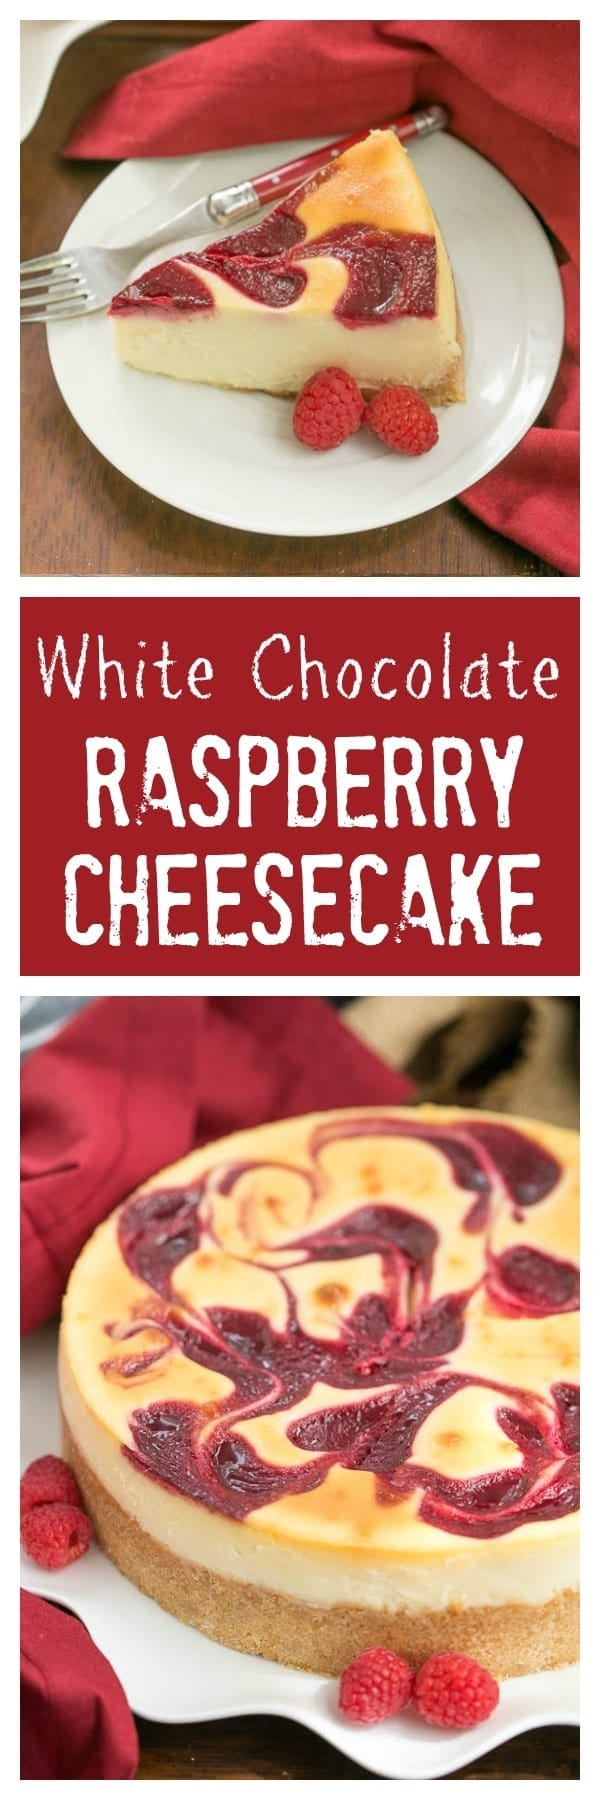 Whole Wheat Chocolate Raspberry Cheesecake Bundt Cake Recipe ...